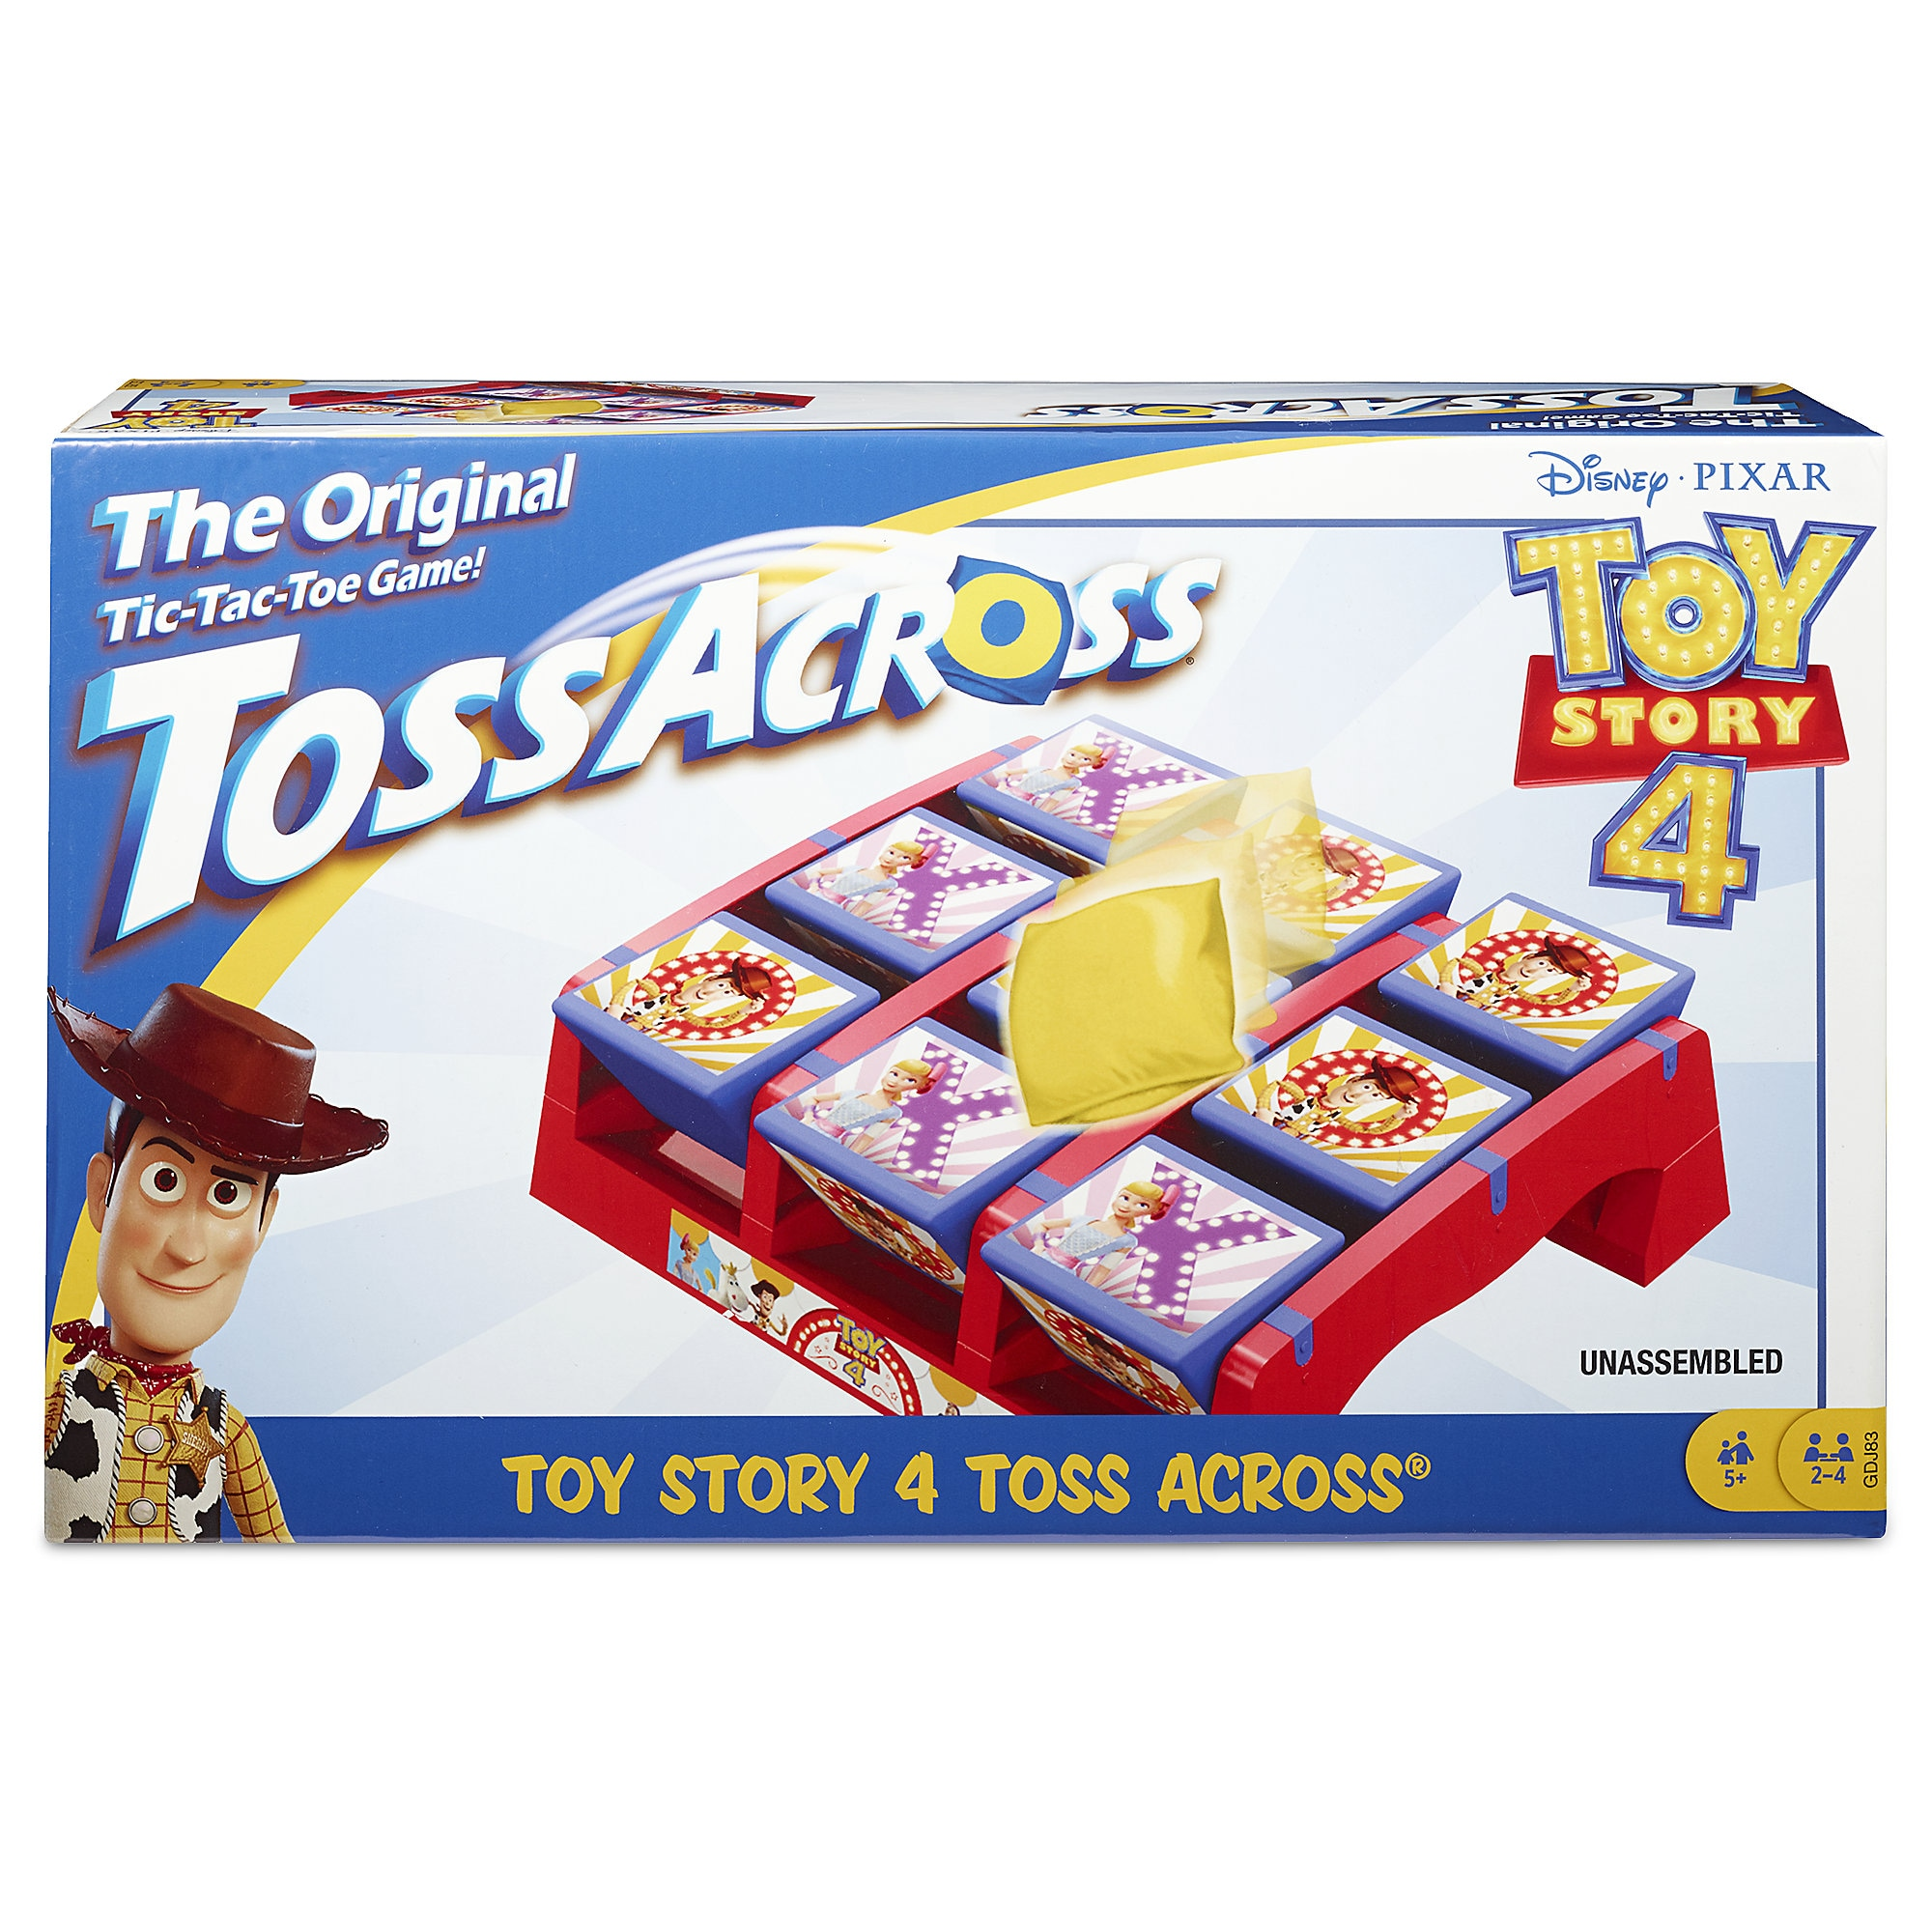 Toy Story 4 Toss Across Game is now available